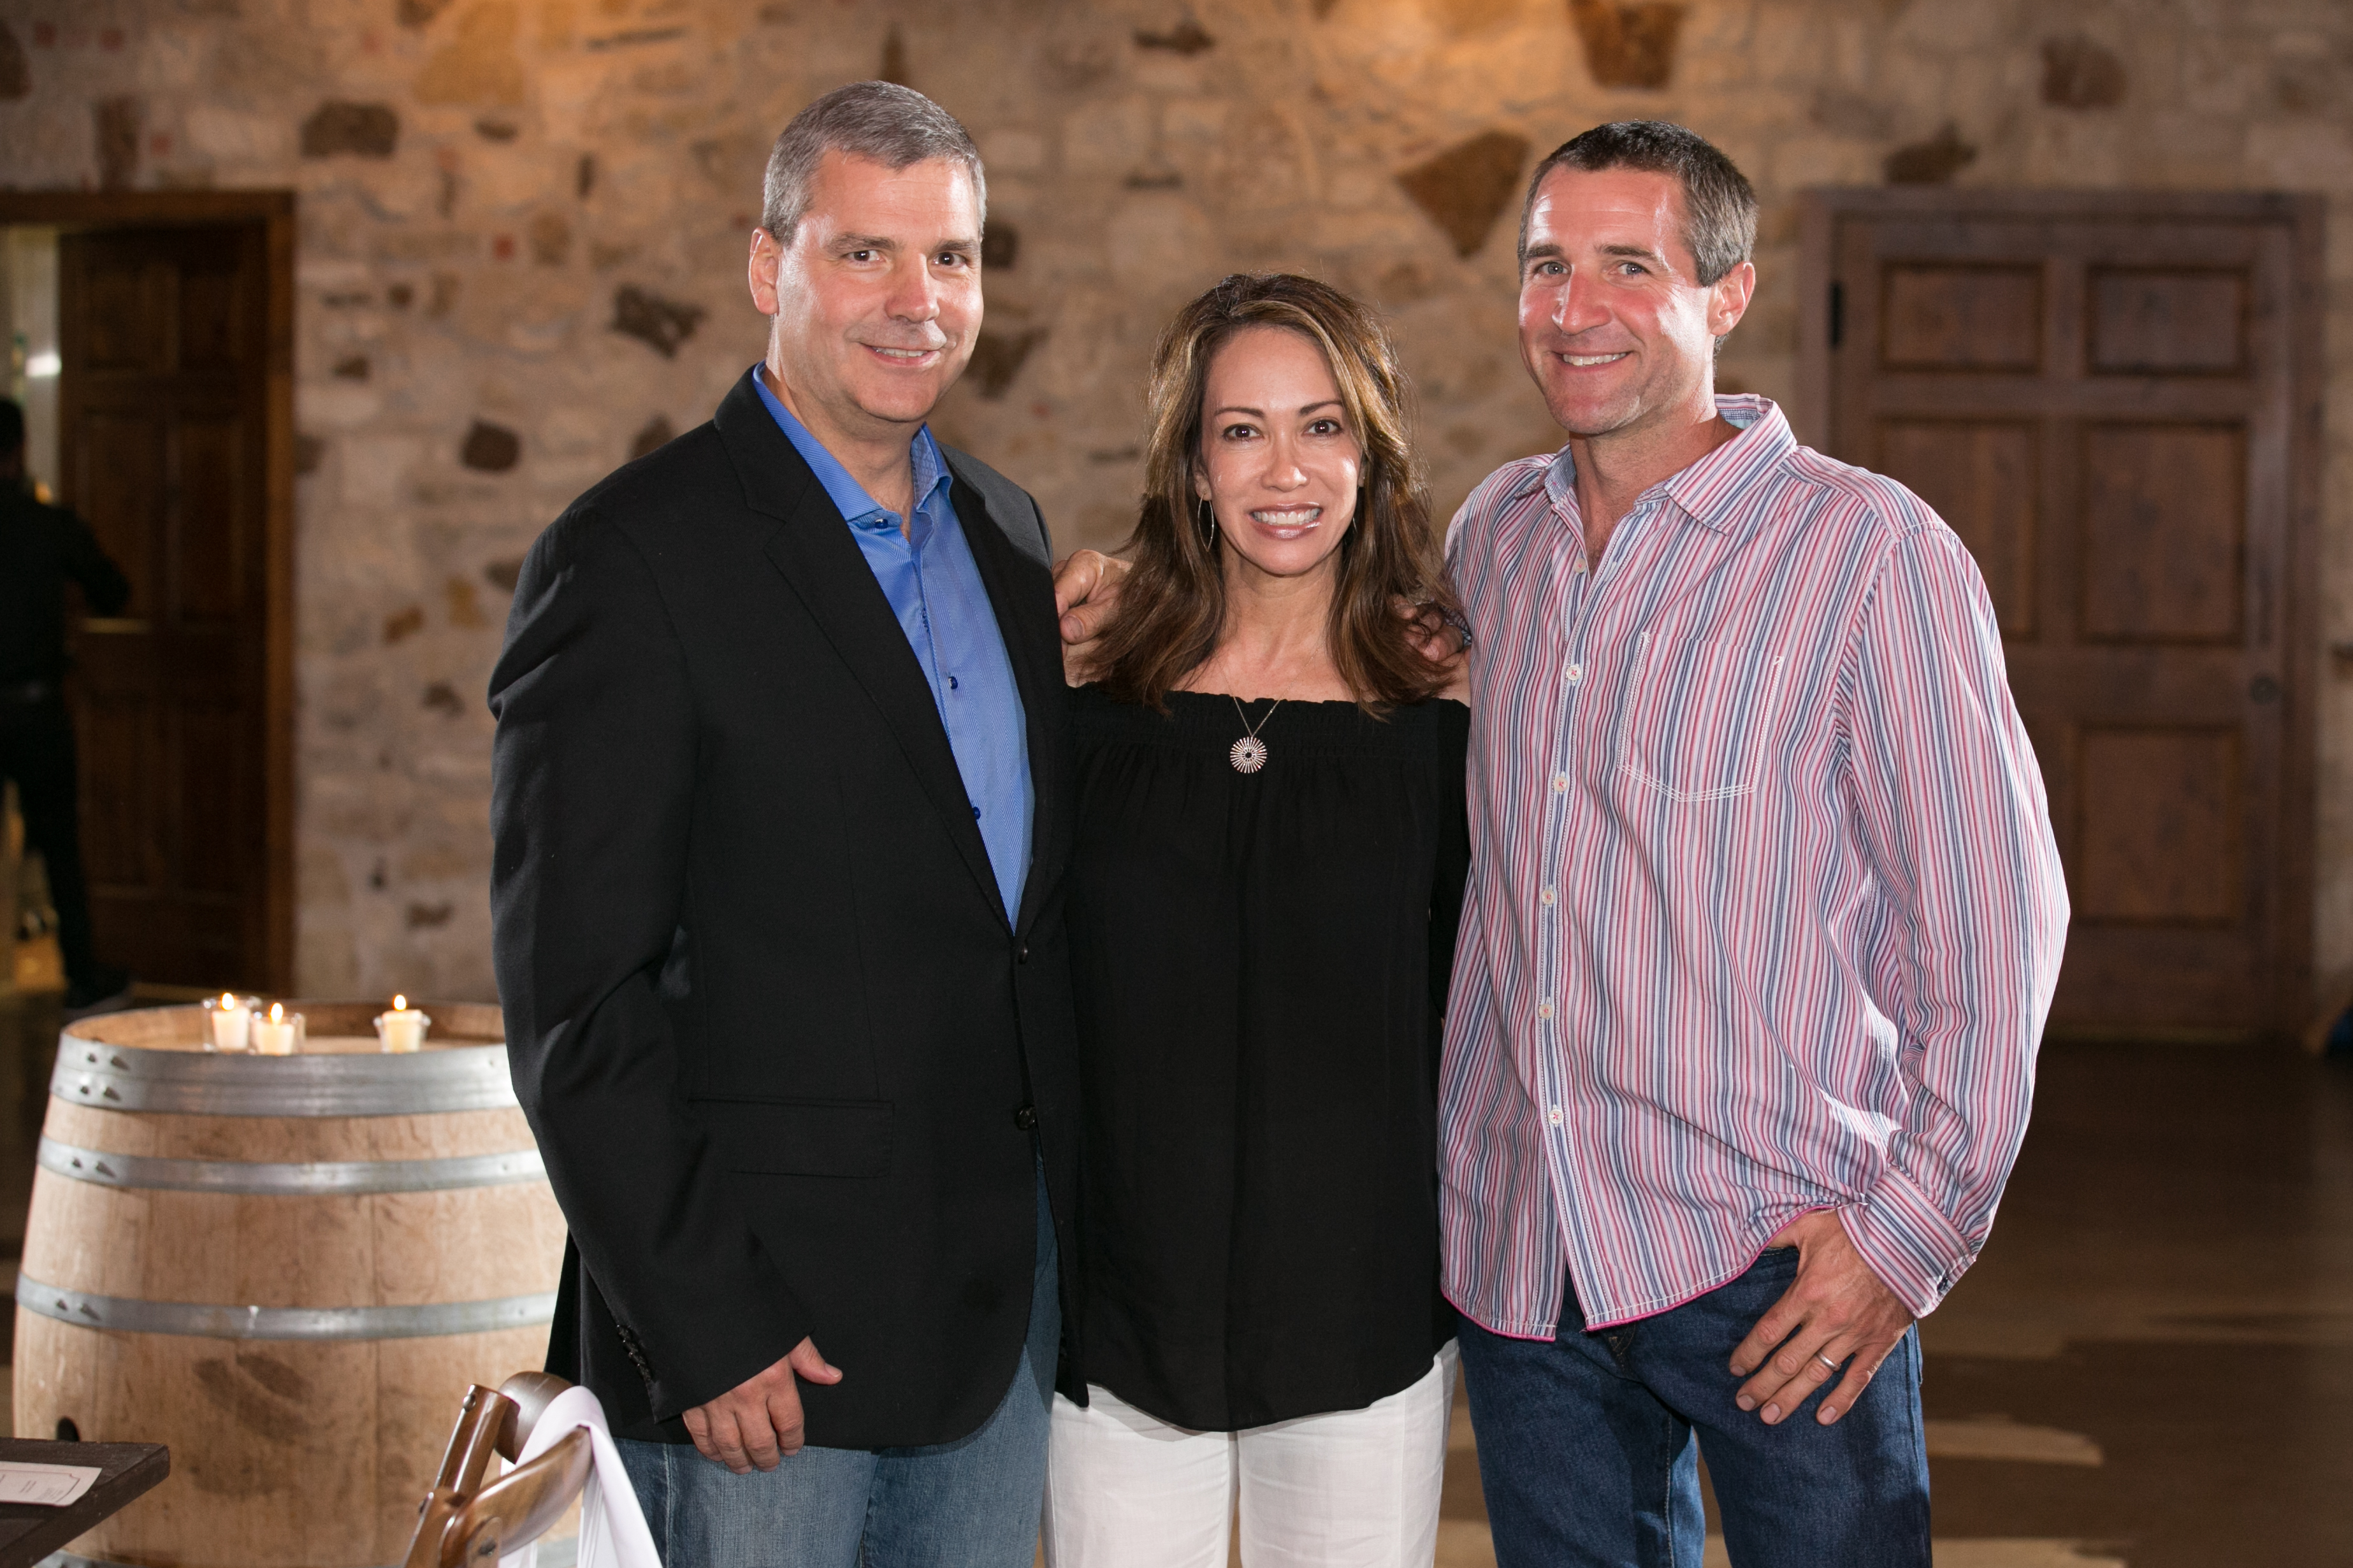 Drs. Stan & Lisa Duchman, Owners & Dave Reilly, Winemaker